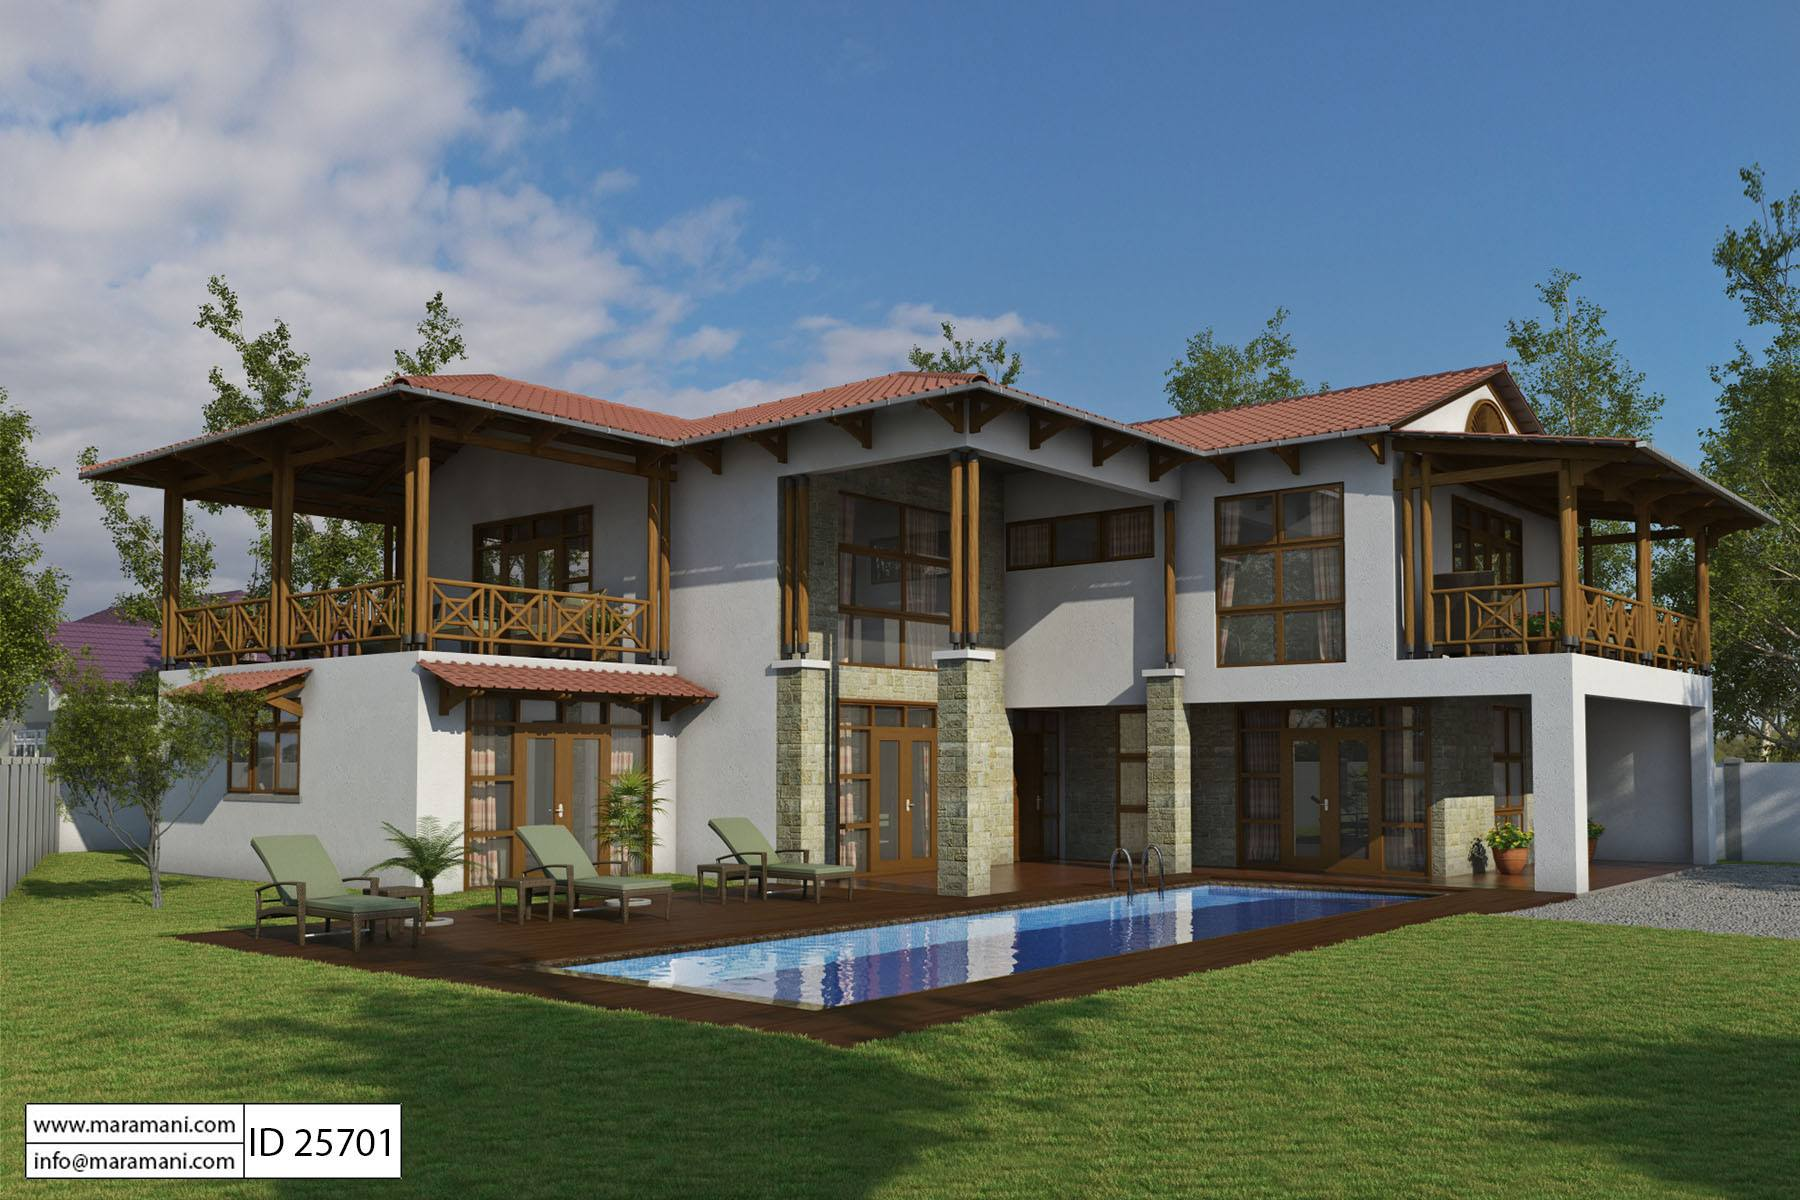 Bali Style House With 5 Bedrooms Id 25701 House Plans By Maramani